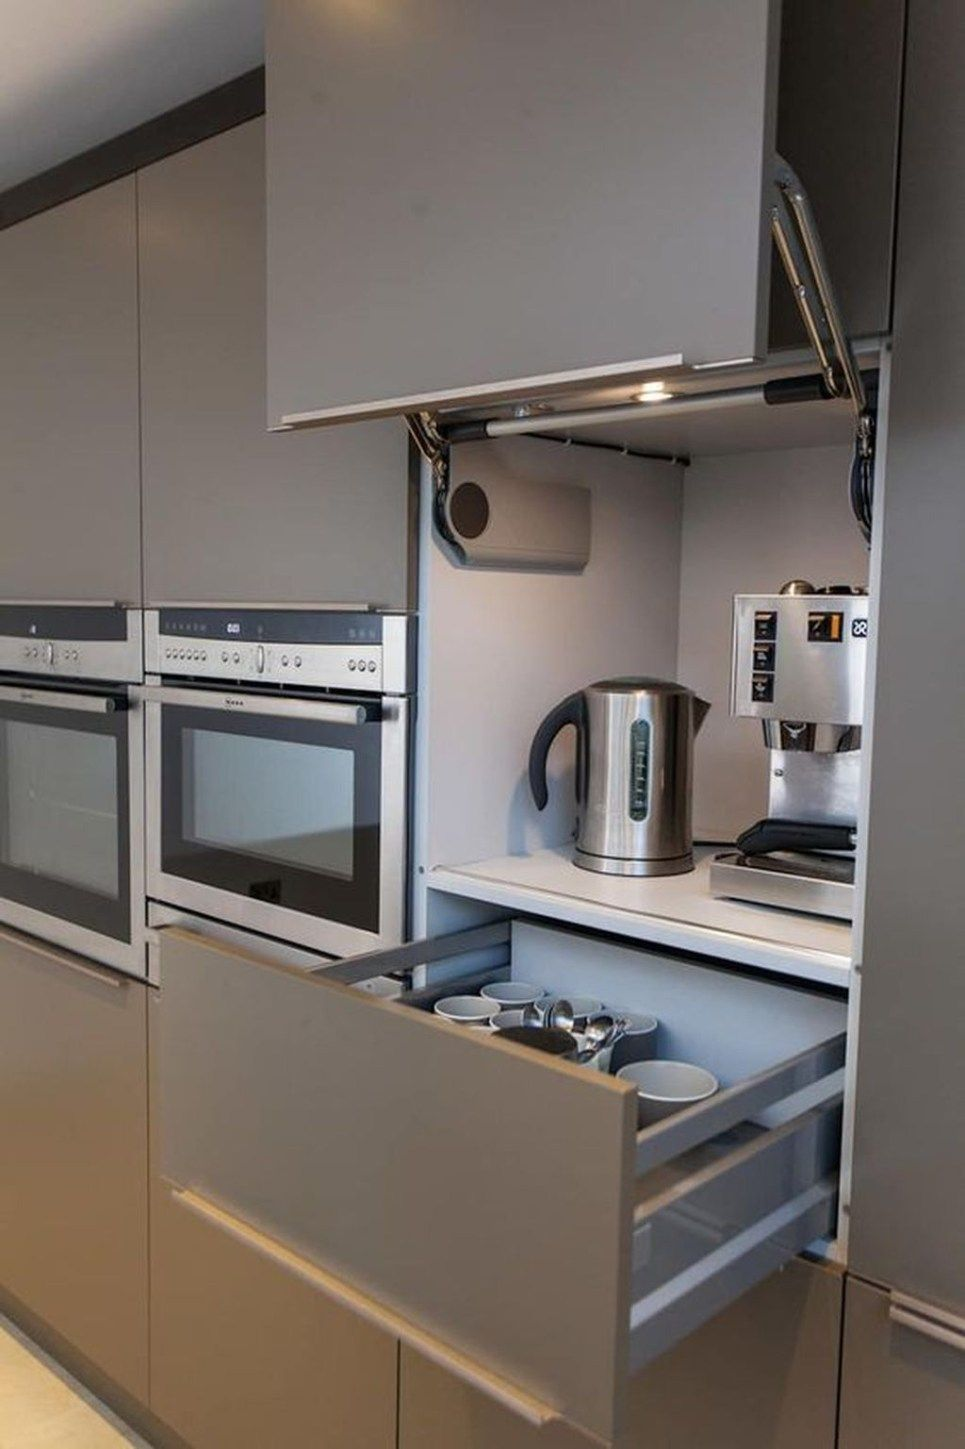 Kitchen Cabinet Ideas Develop Storage E And Design In Your With These Creative Innovative Area Cupboard Concepts